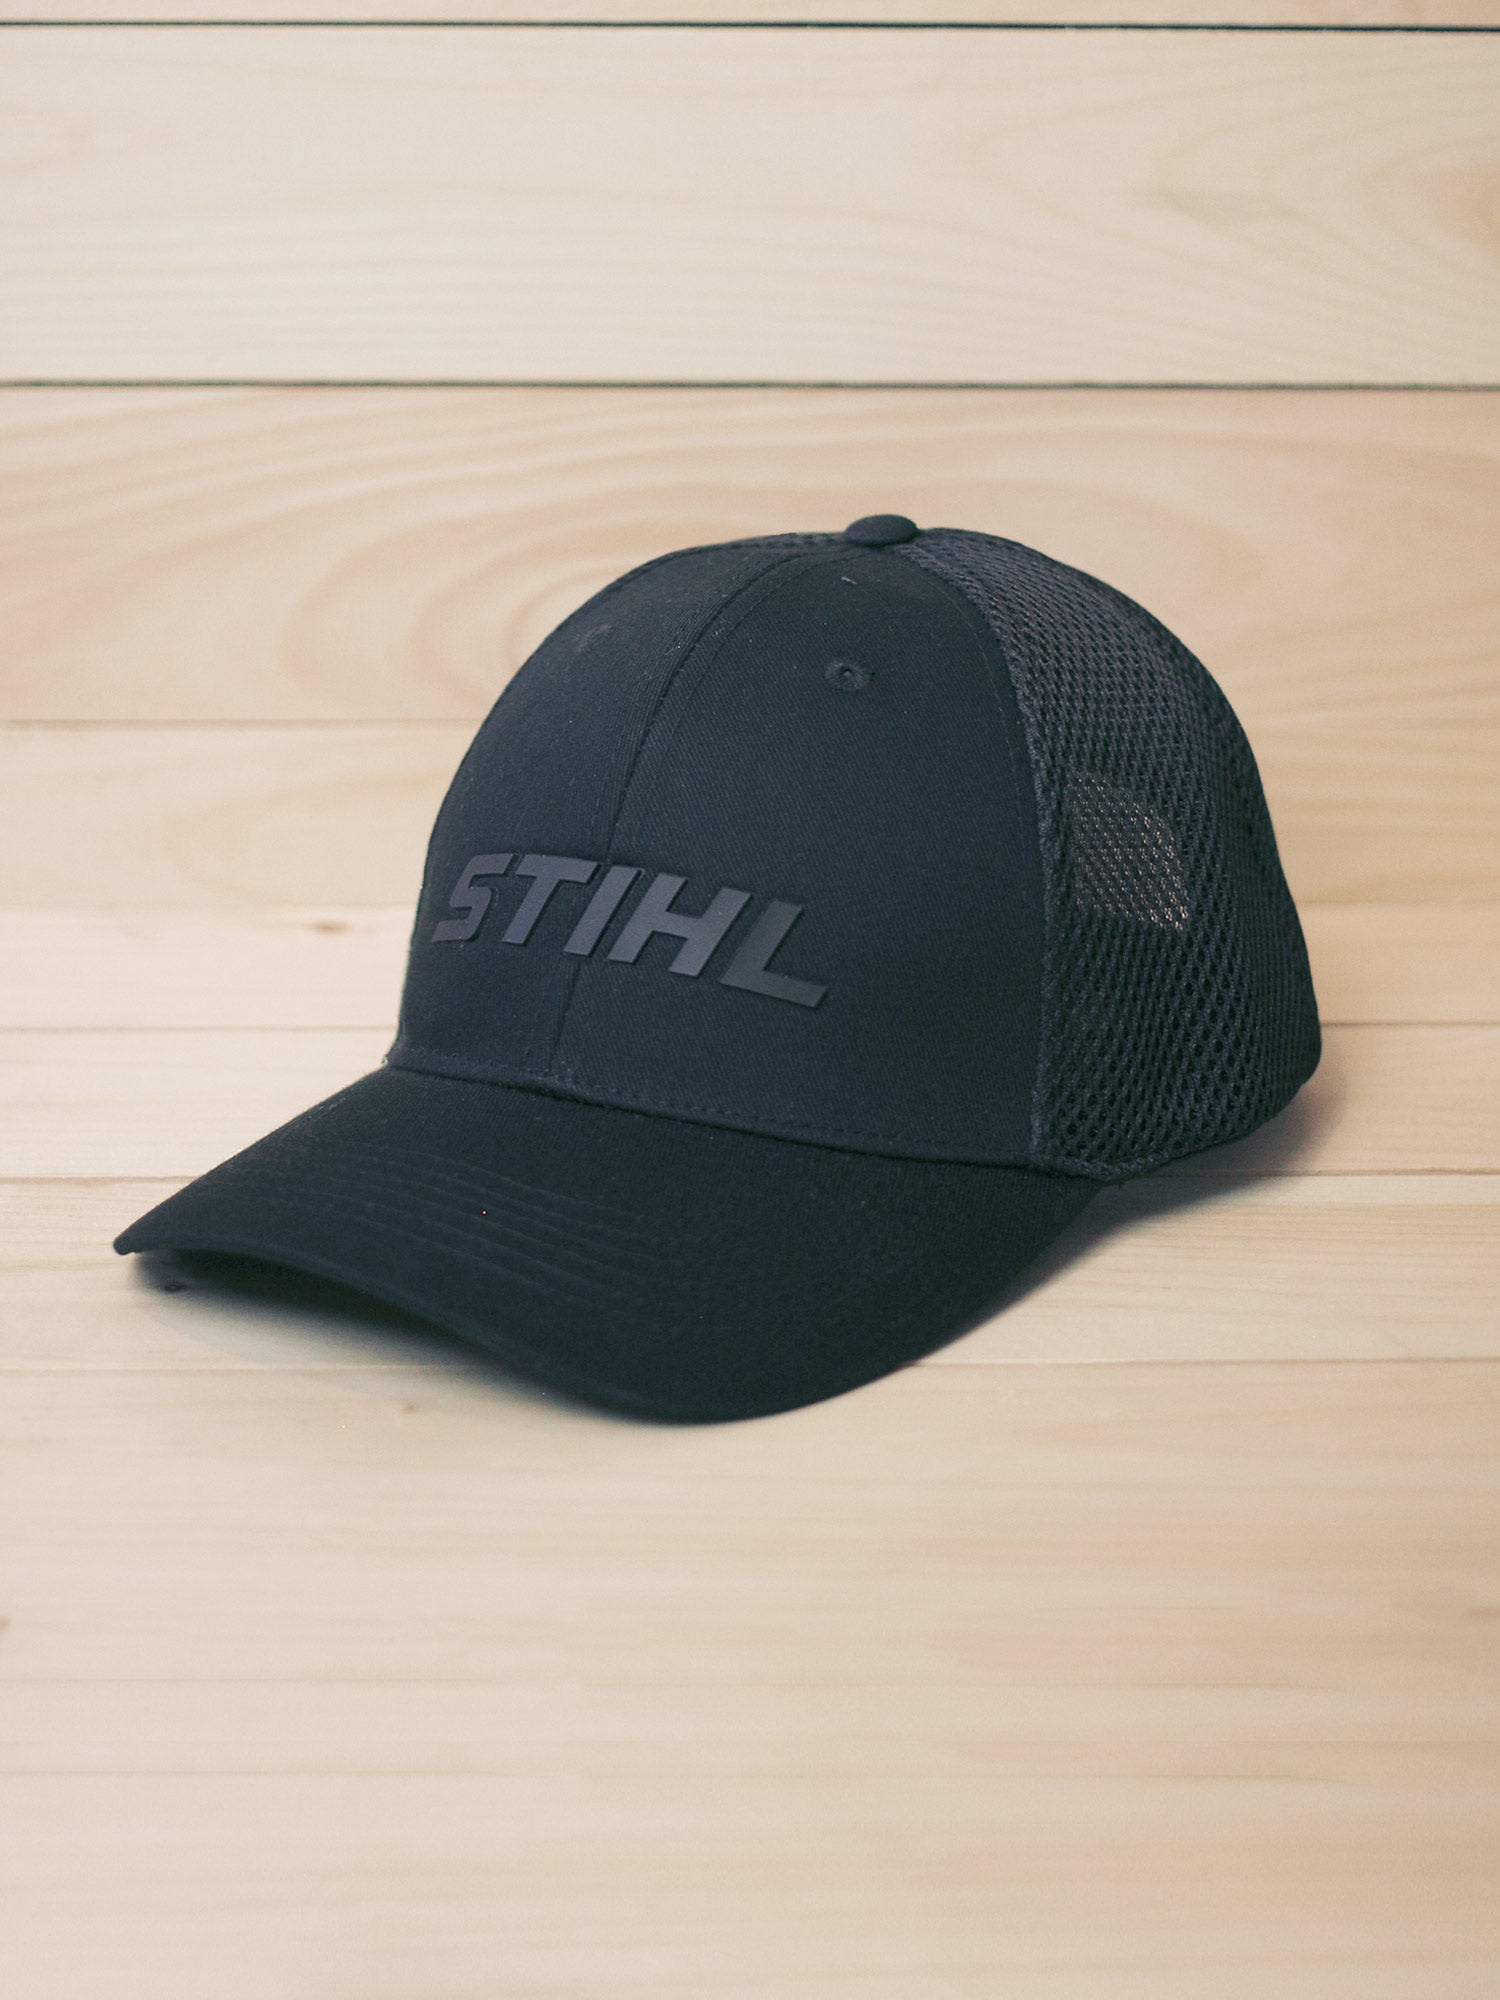 STIHL Black Performance Hat